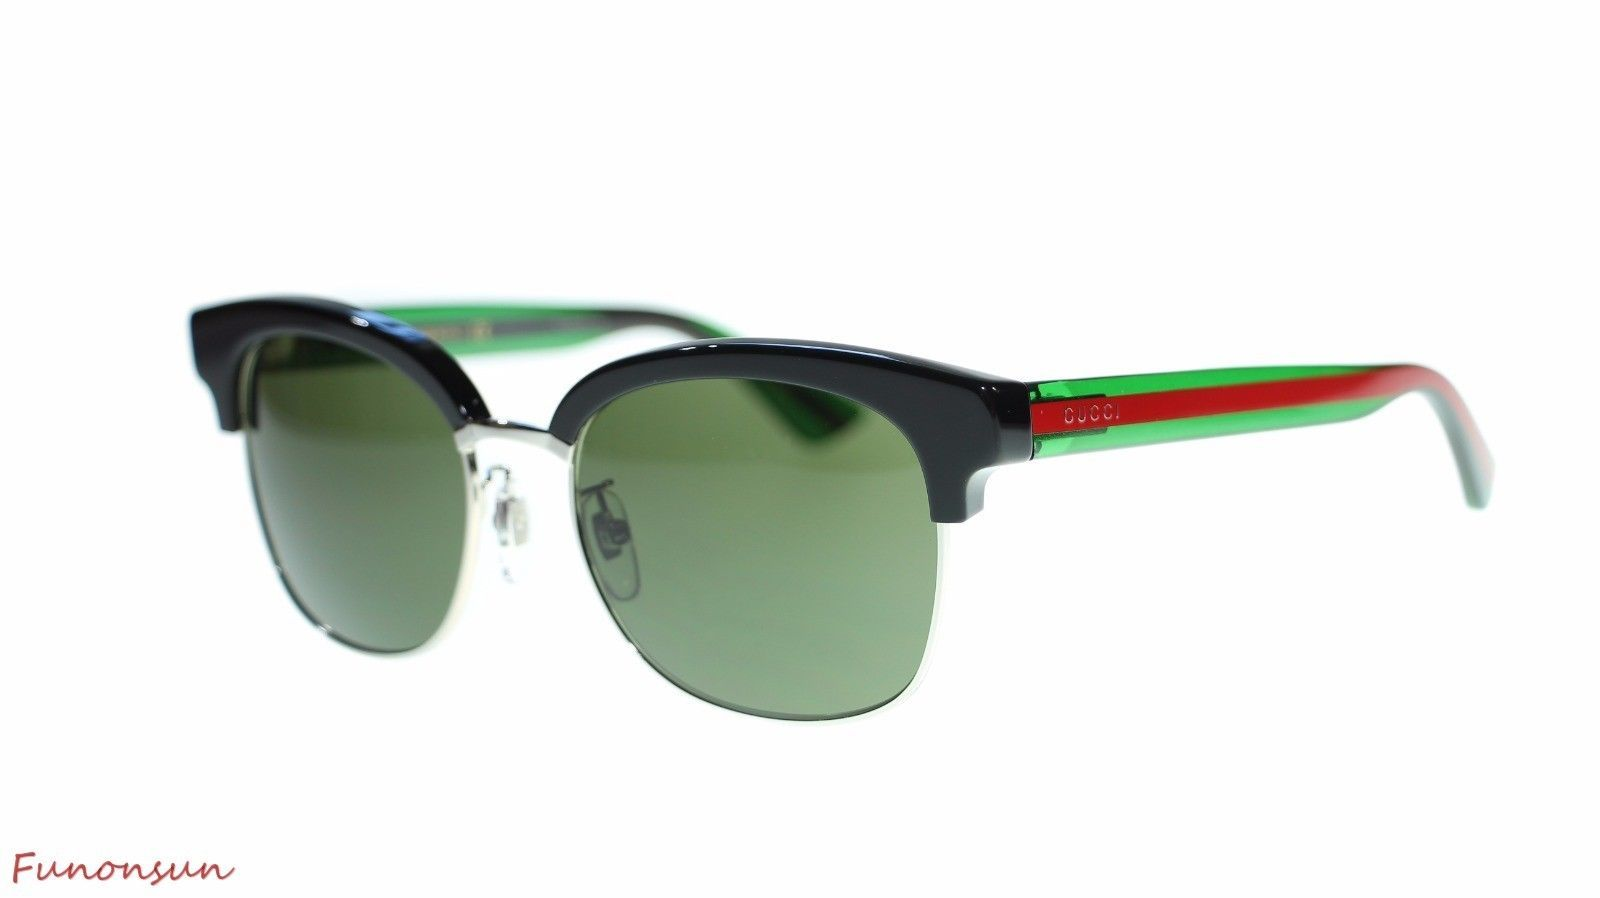 544c9dae5d8 S l1600. S l1600. Previous. Gucci Women Round Sunglasses GG0056S 002 Black  Green Red Green Lens 54mm